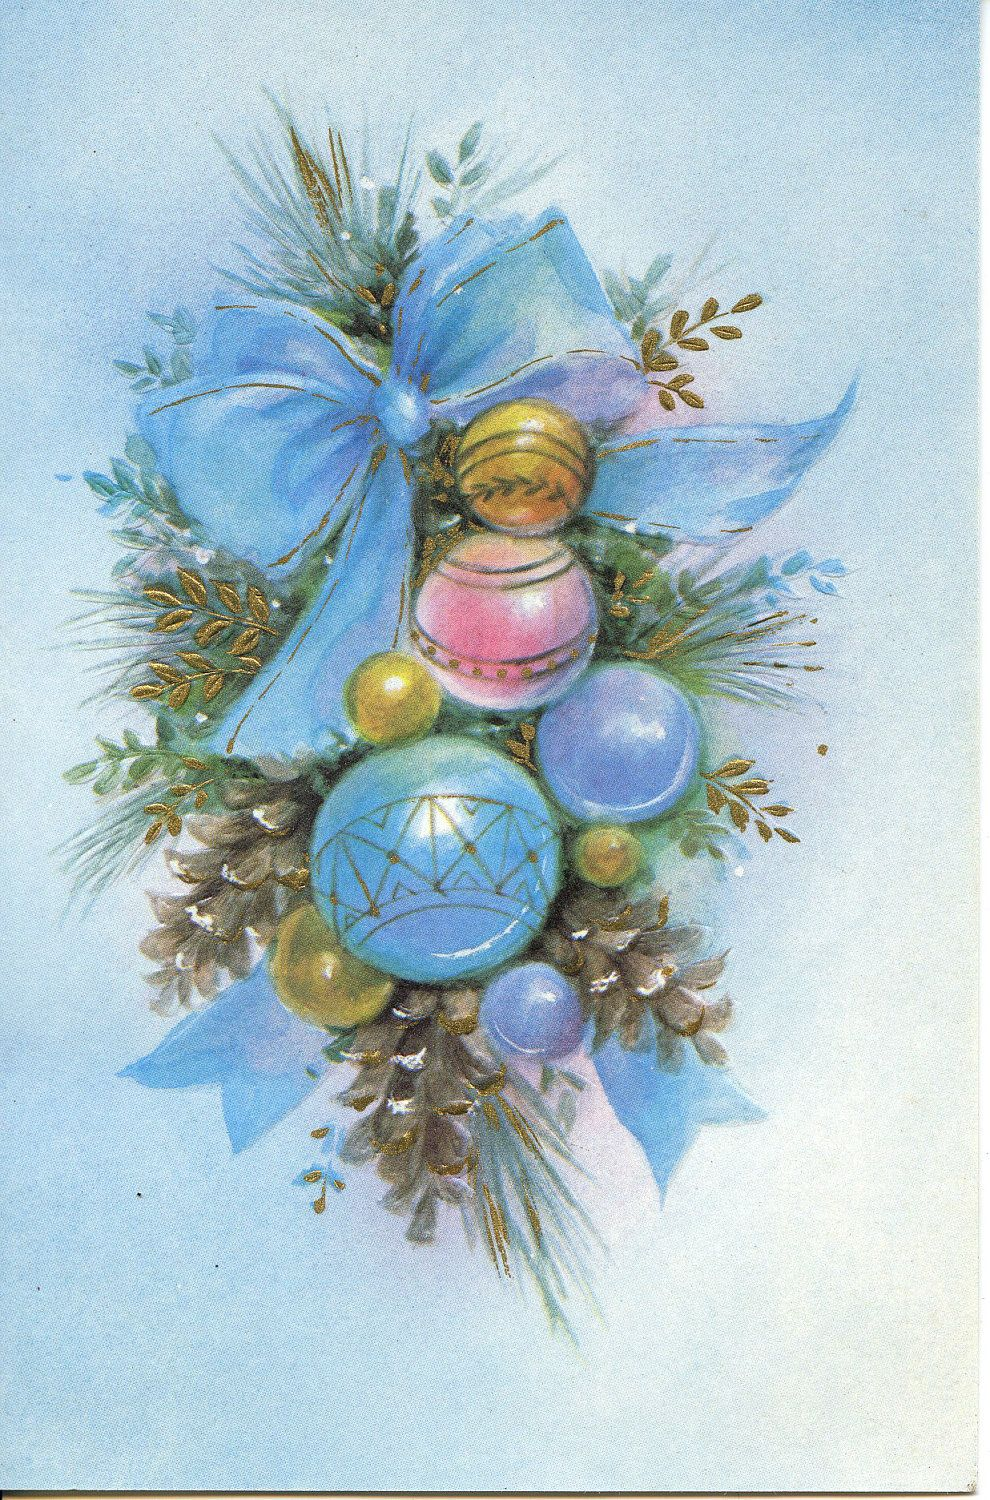 Vintage Christmas Card With Greenery Ornaments And A Light Blue